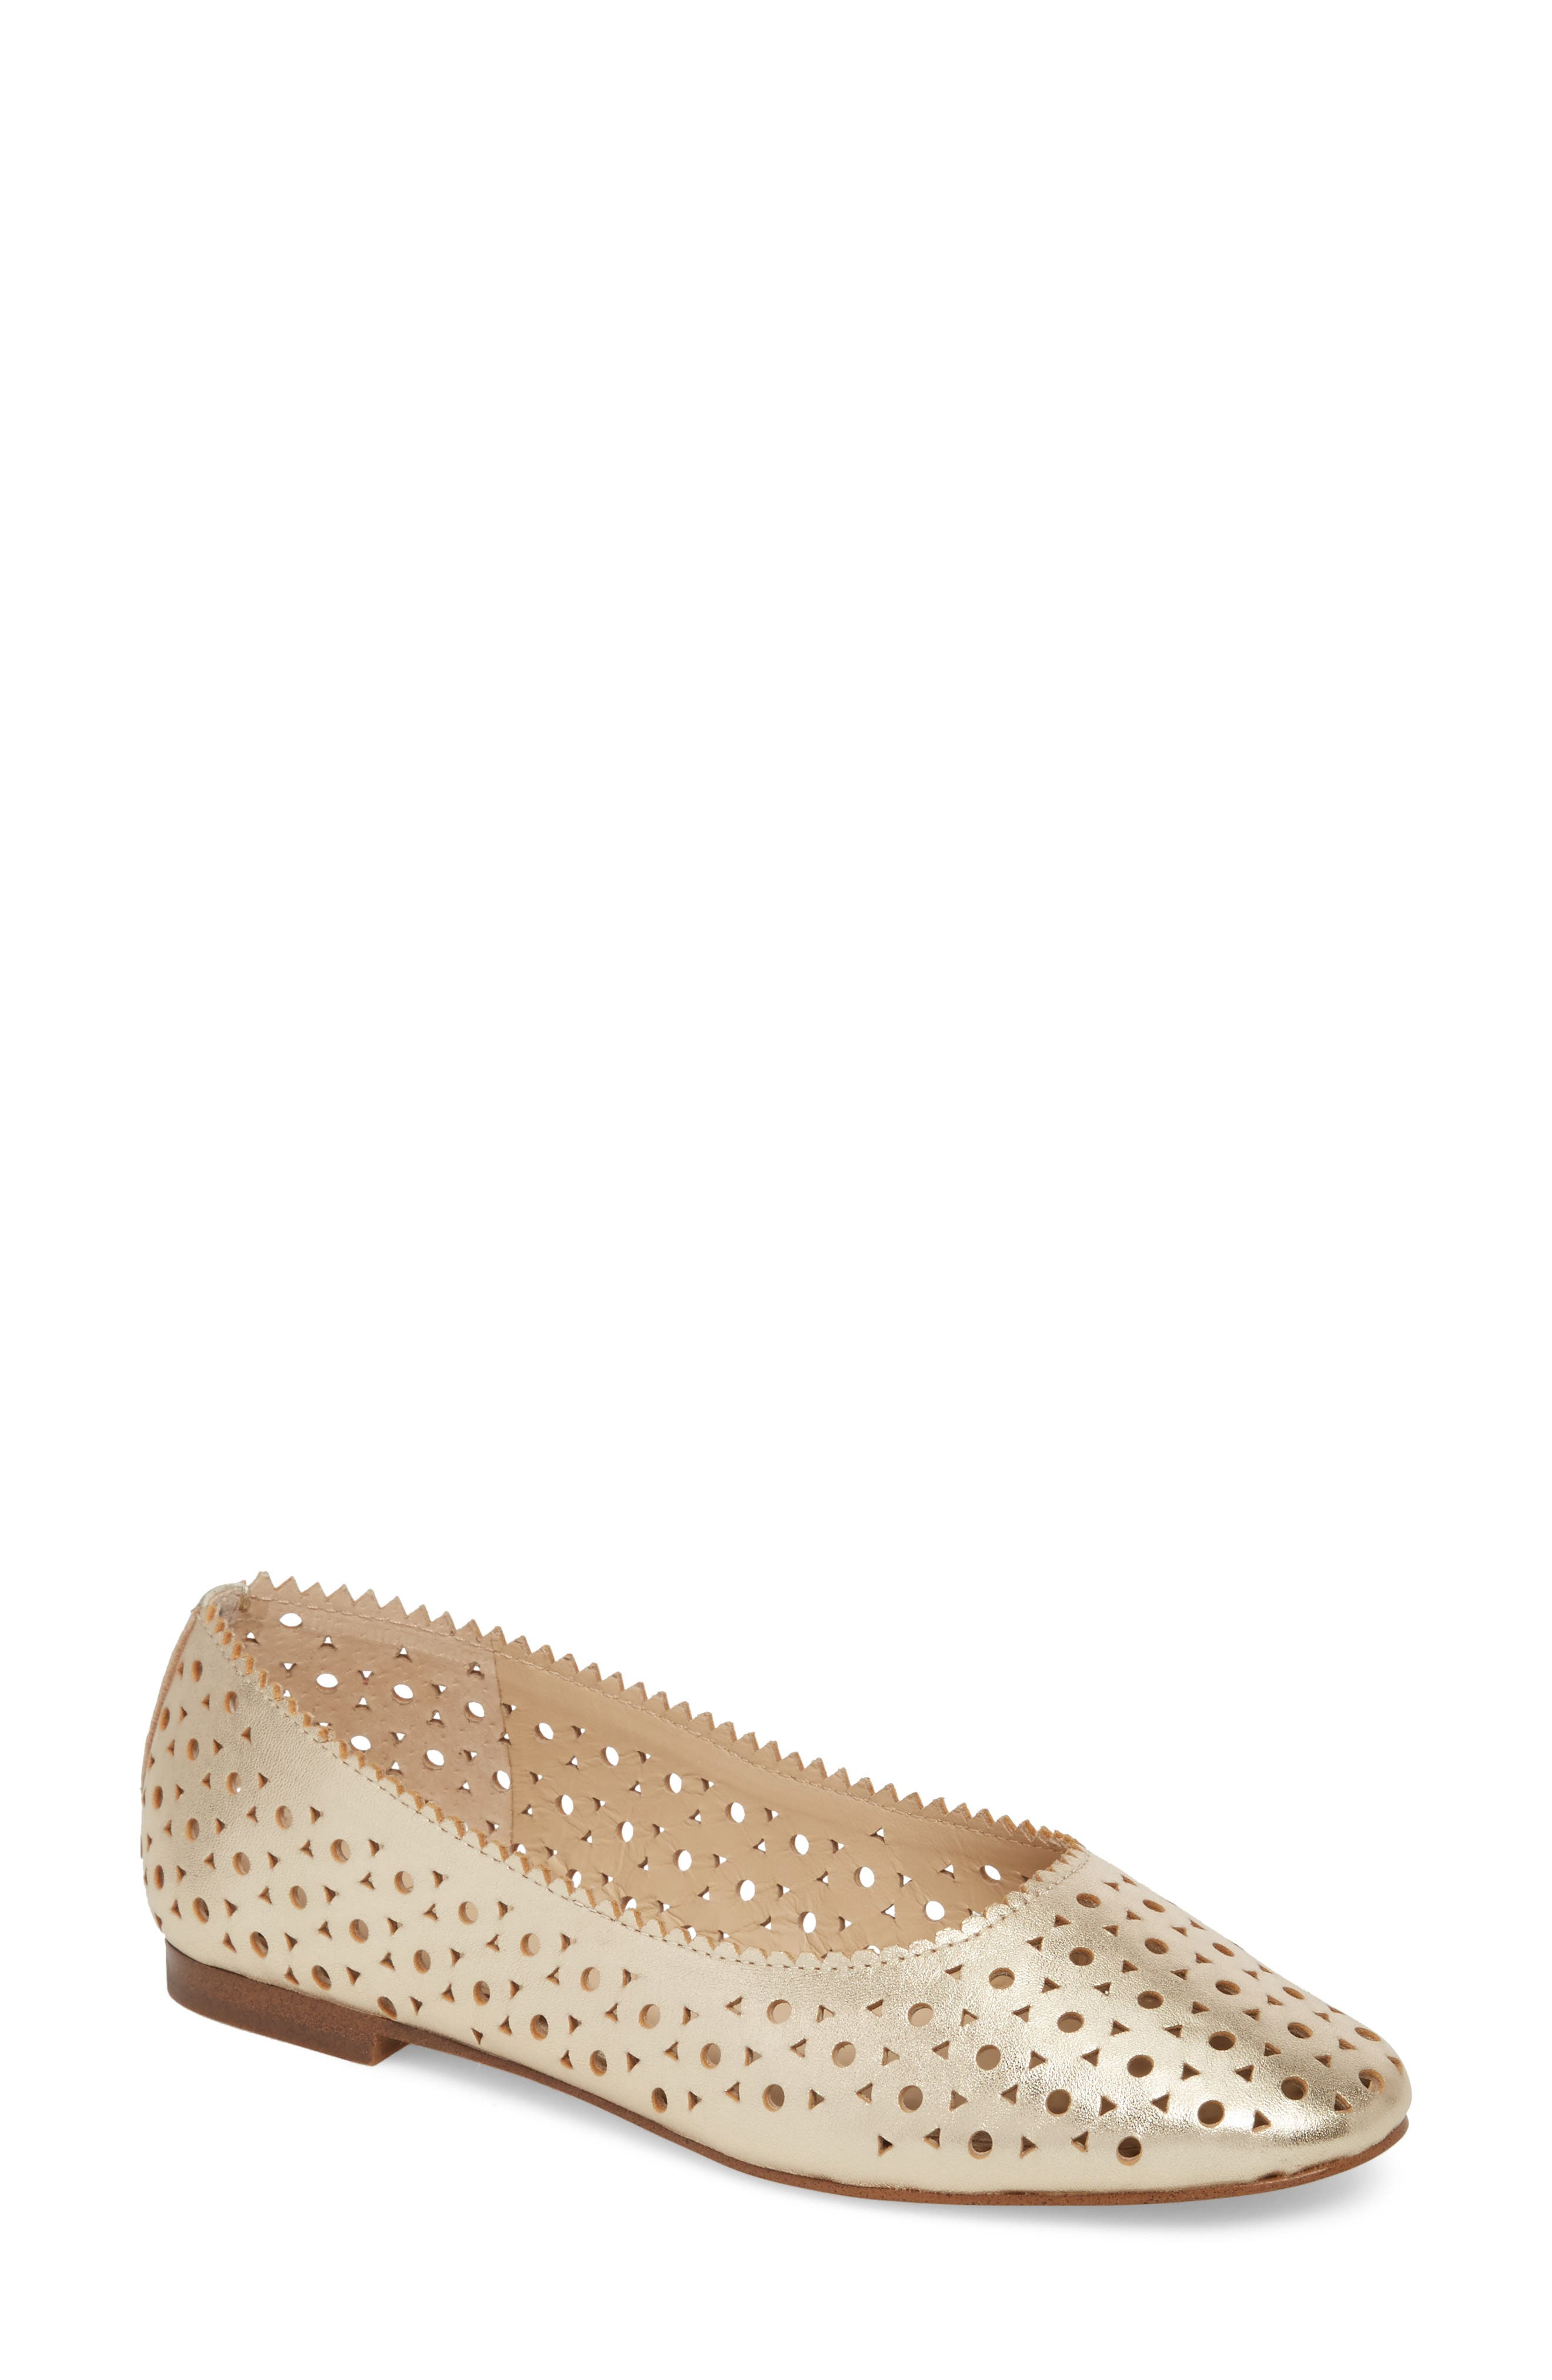 Mandy Flat,                             Main thumbnail 1, color,                             Metallic Ivory Leather